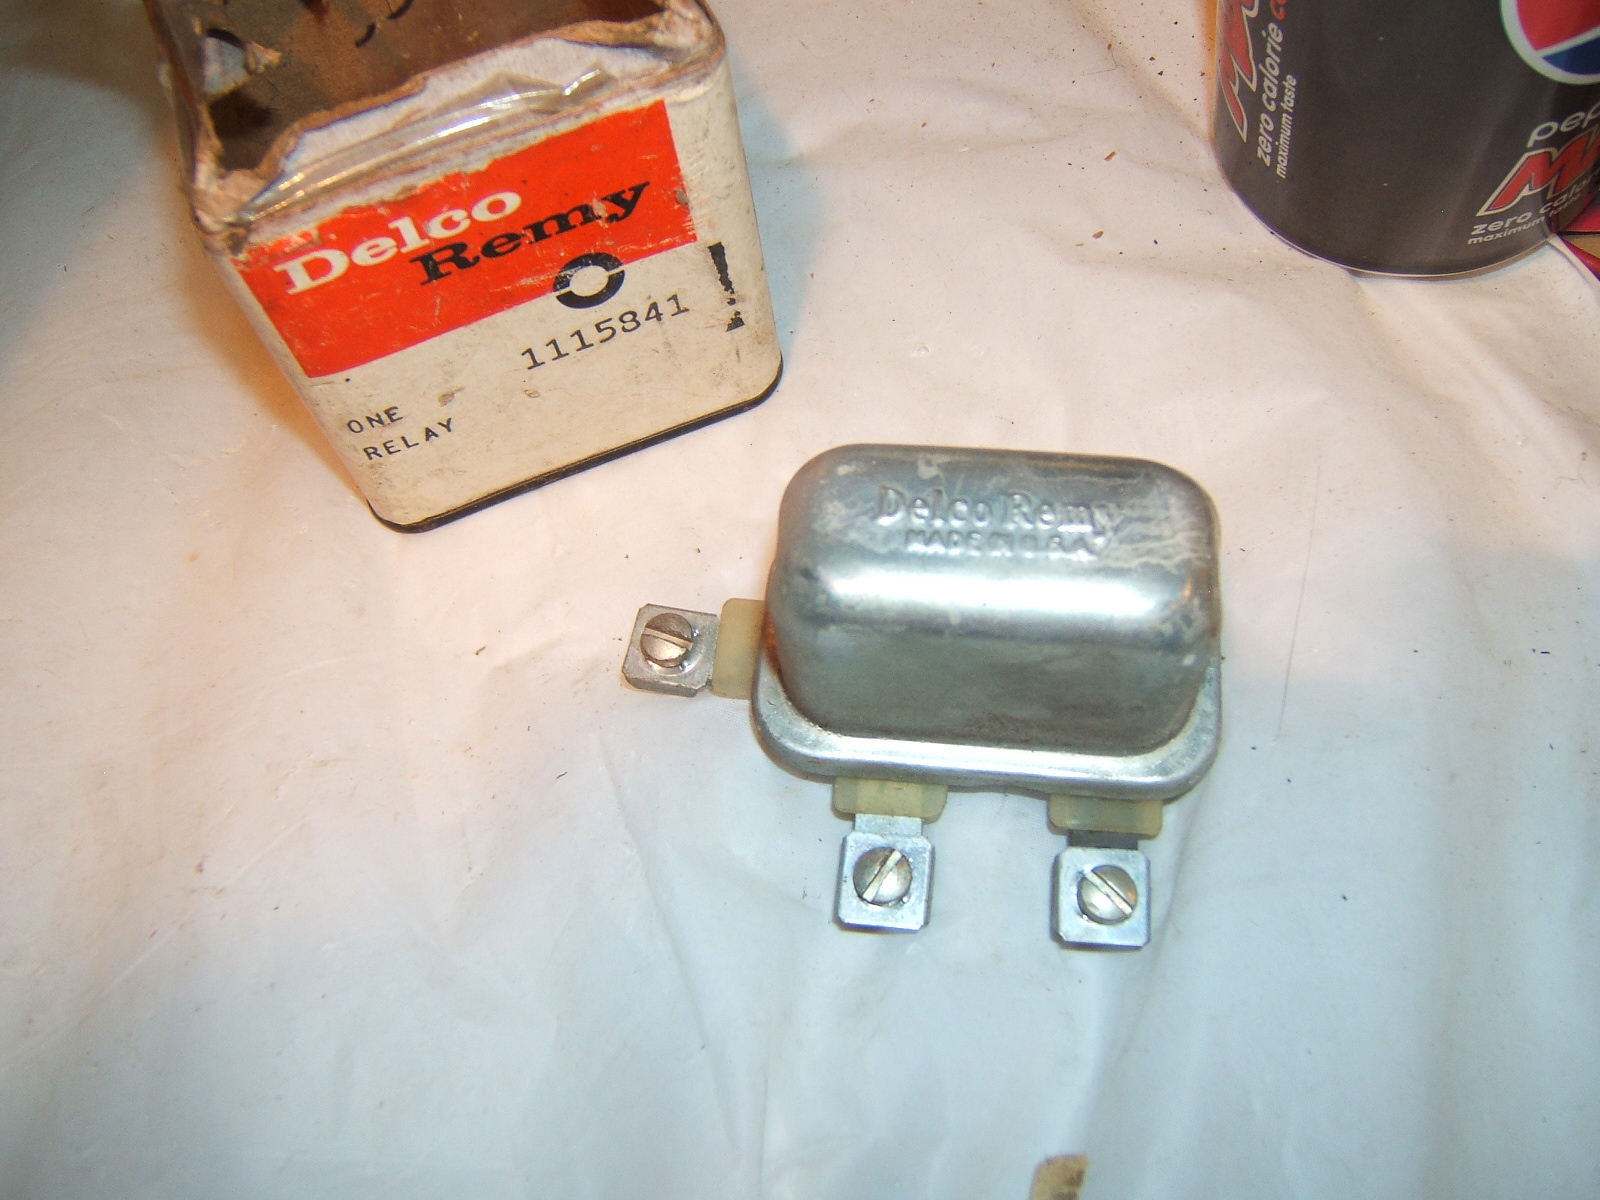 1954-1972 Chevrolet Buick Oldsmobile Pontiac Cadillac relay 1115841 (a 1115841)